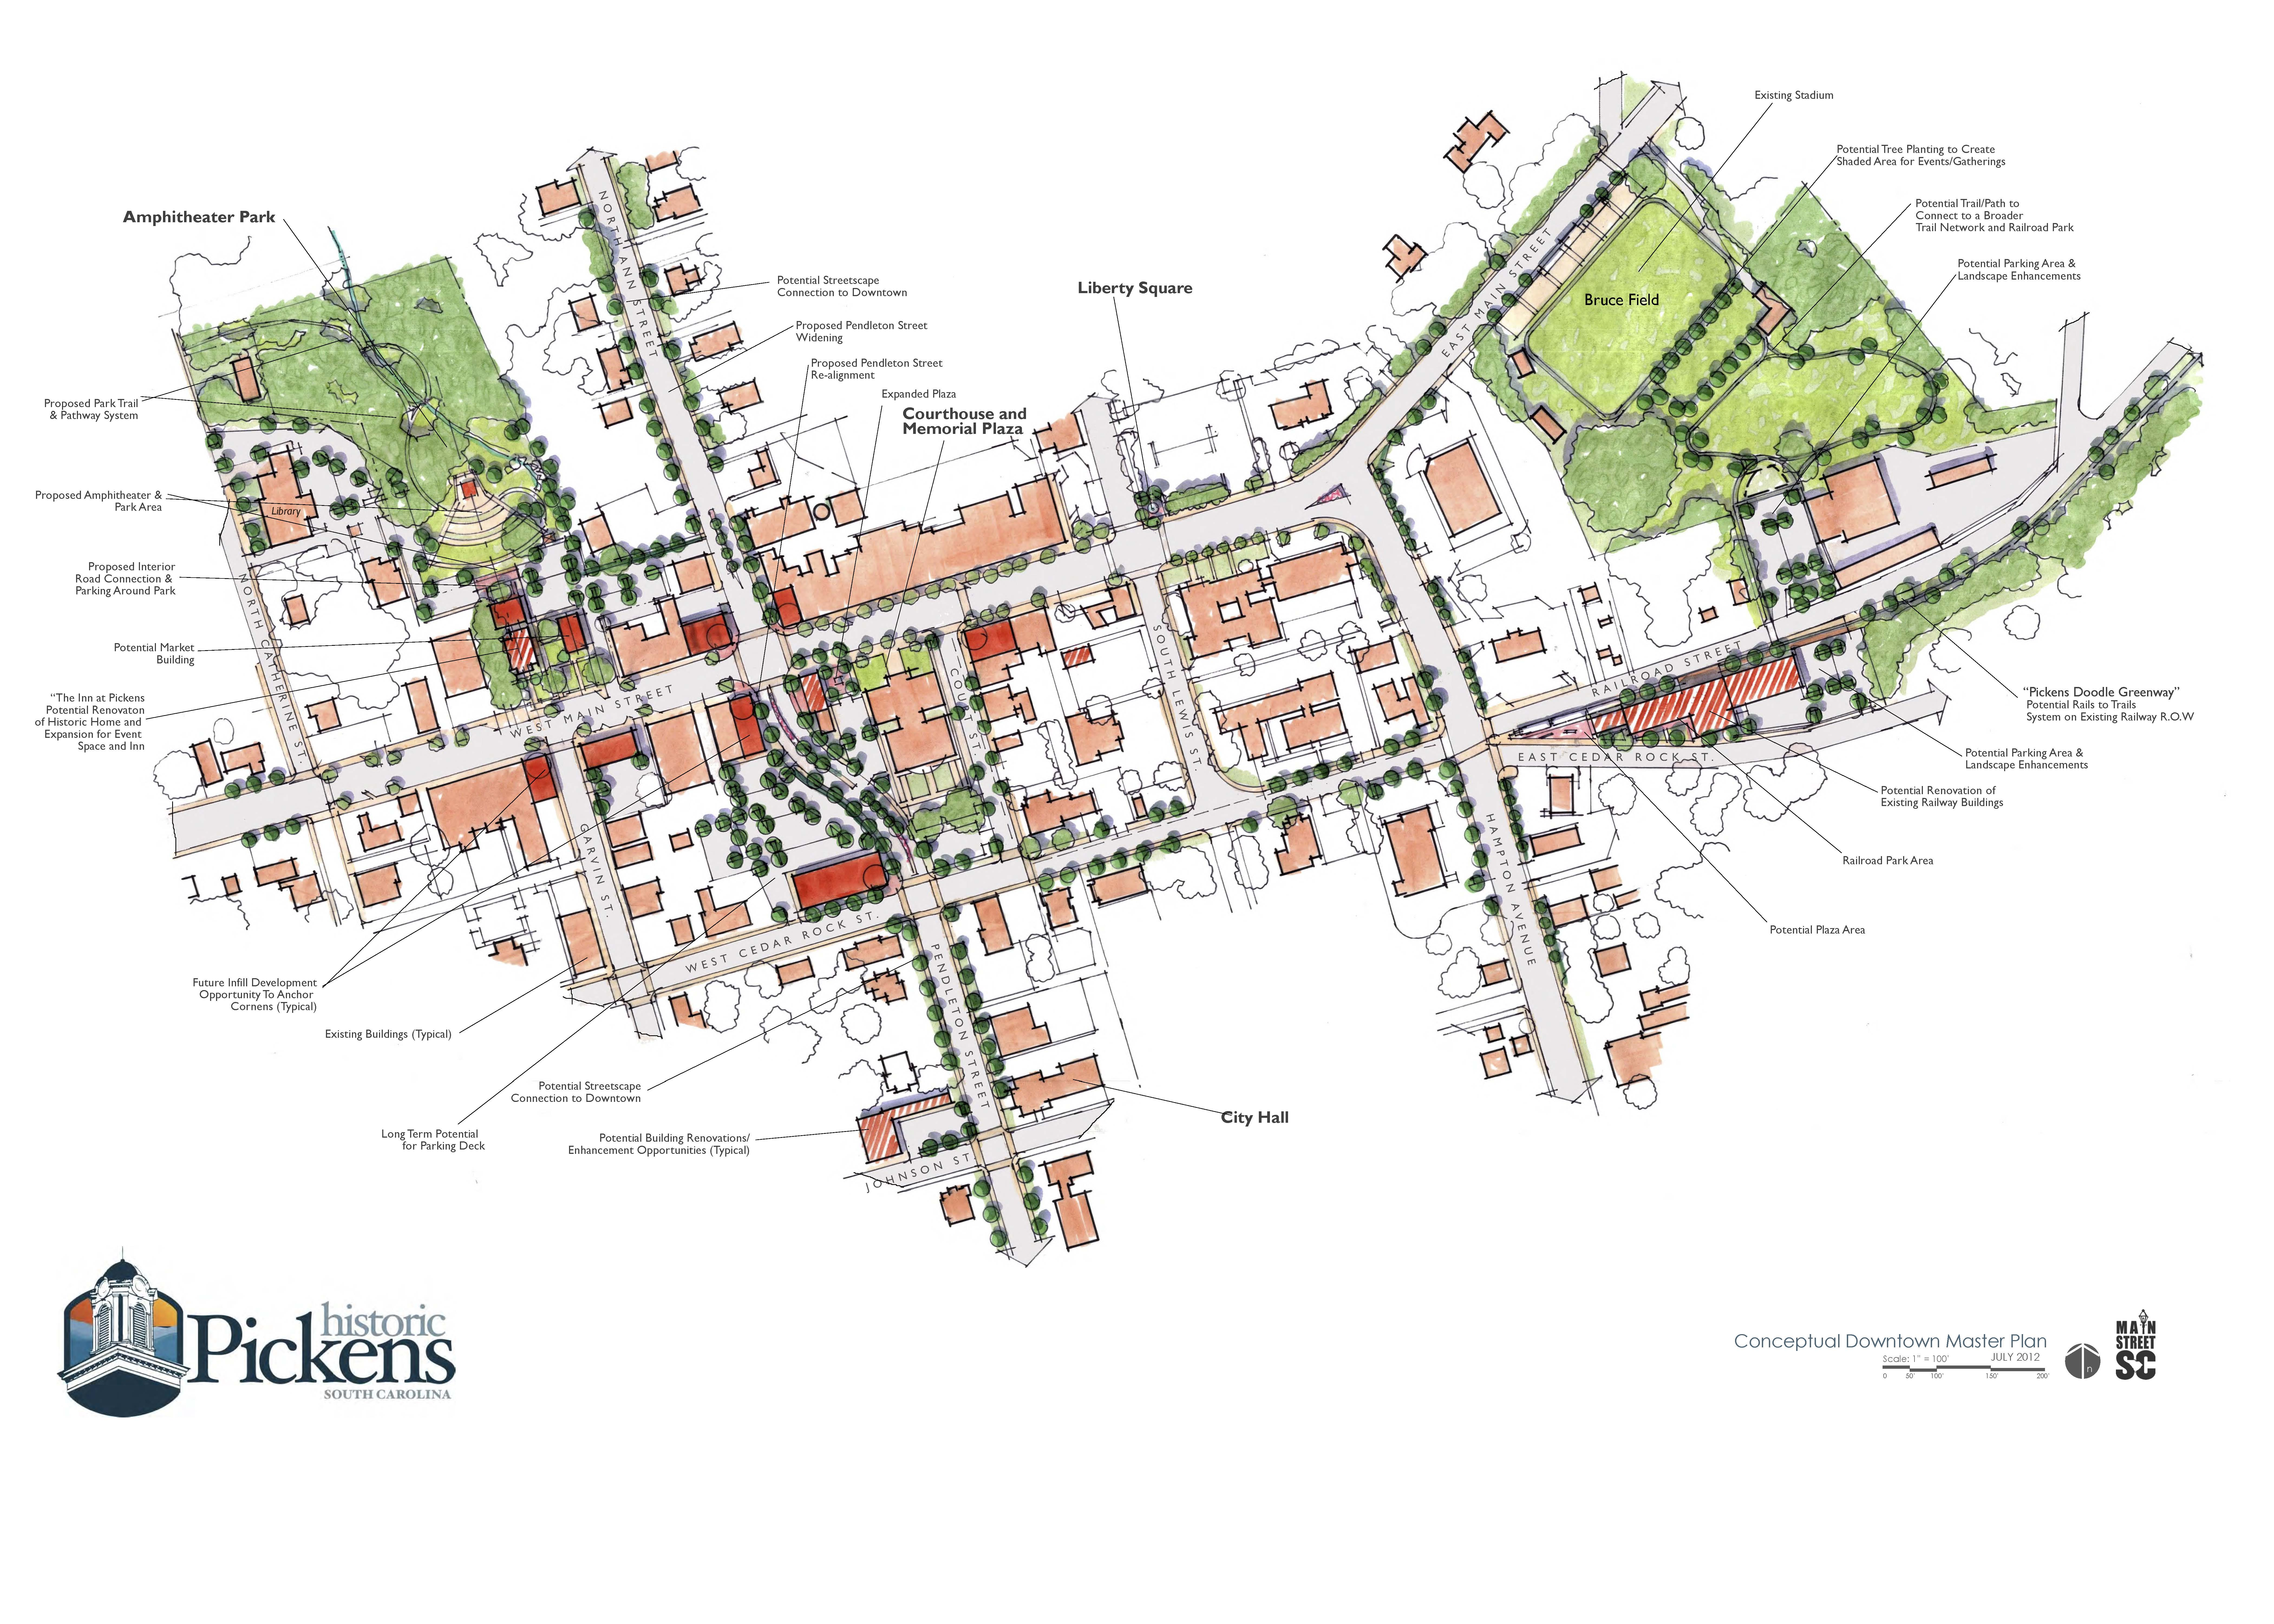 Pickens Downtown Master Plan - Official Website of the City of ... on